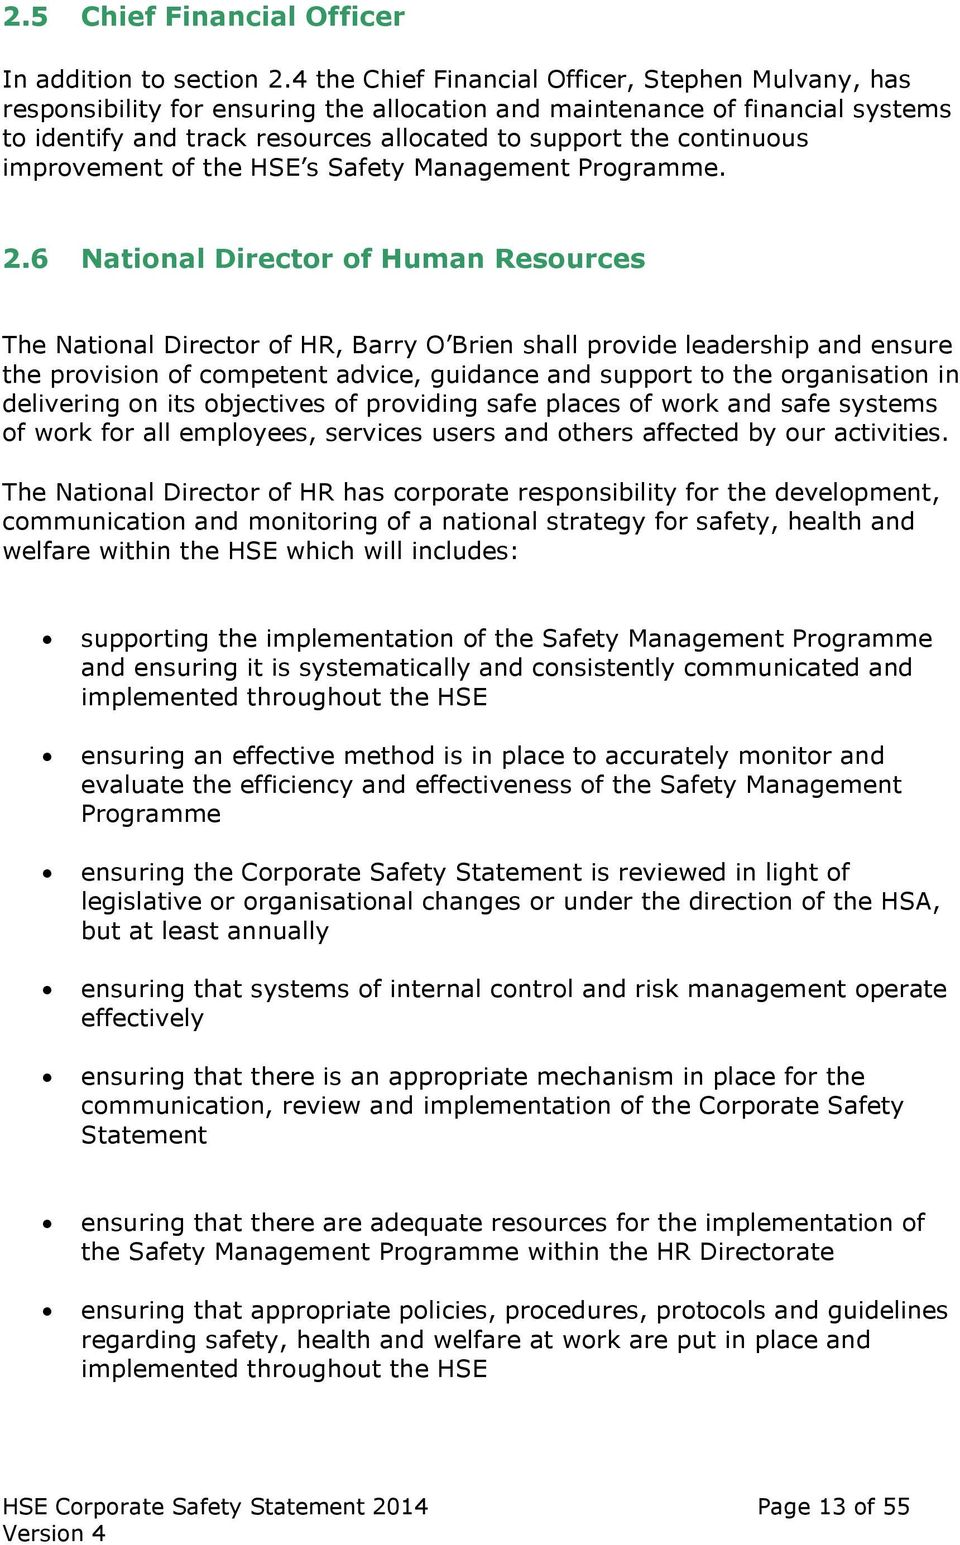 improvement of the HSE s Safety Management Programme. 2.